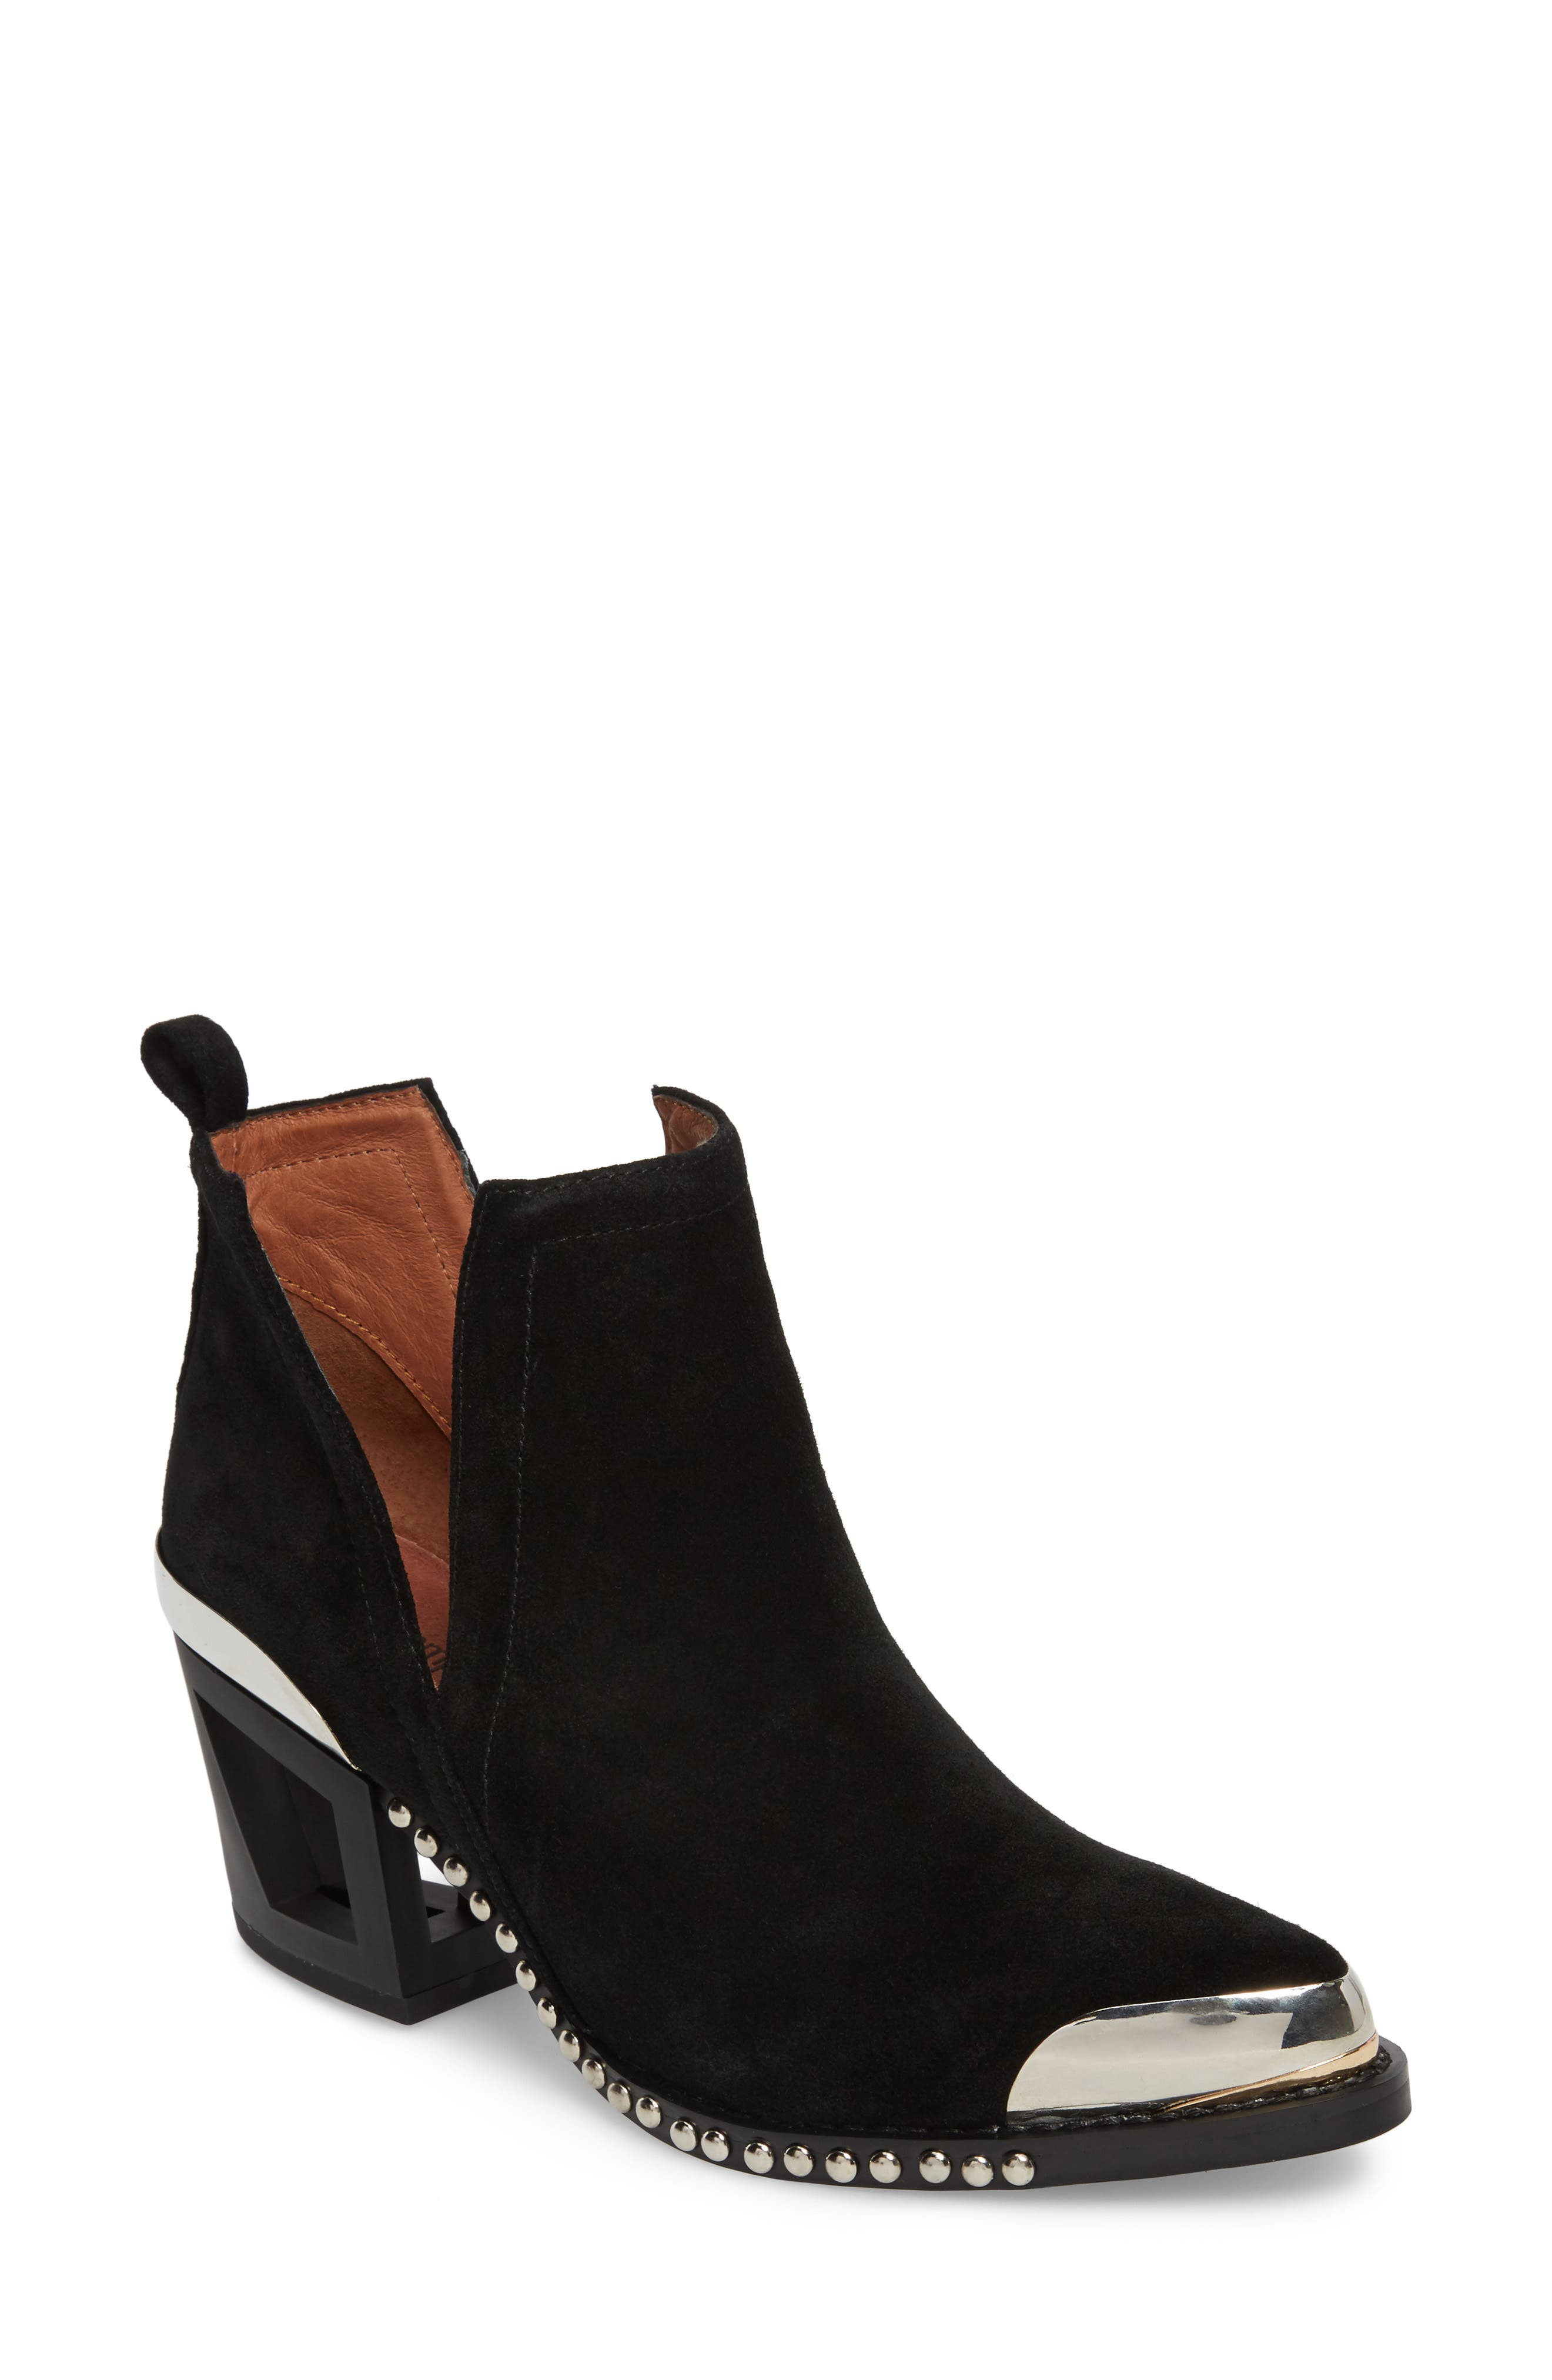 Alternate Image 1 Selected - Jeffrey Campbell Optimum Studded Snake Textured Bootie (Women)